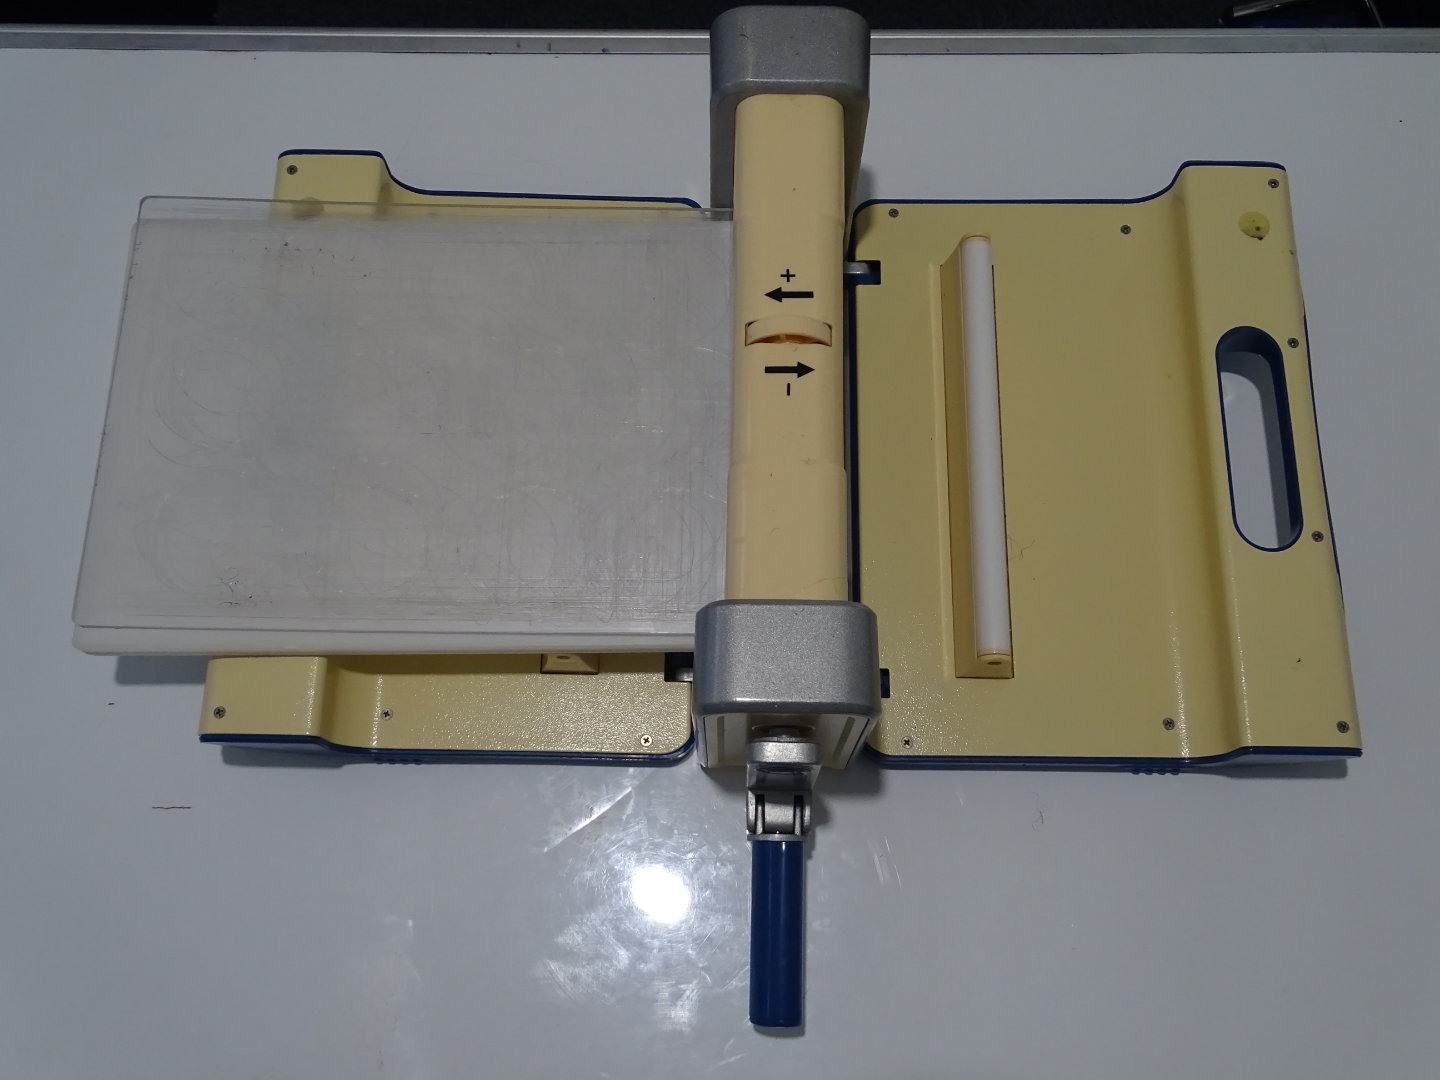 embossing-and-die-cutting-machine-manual-version-image-2